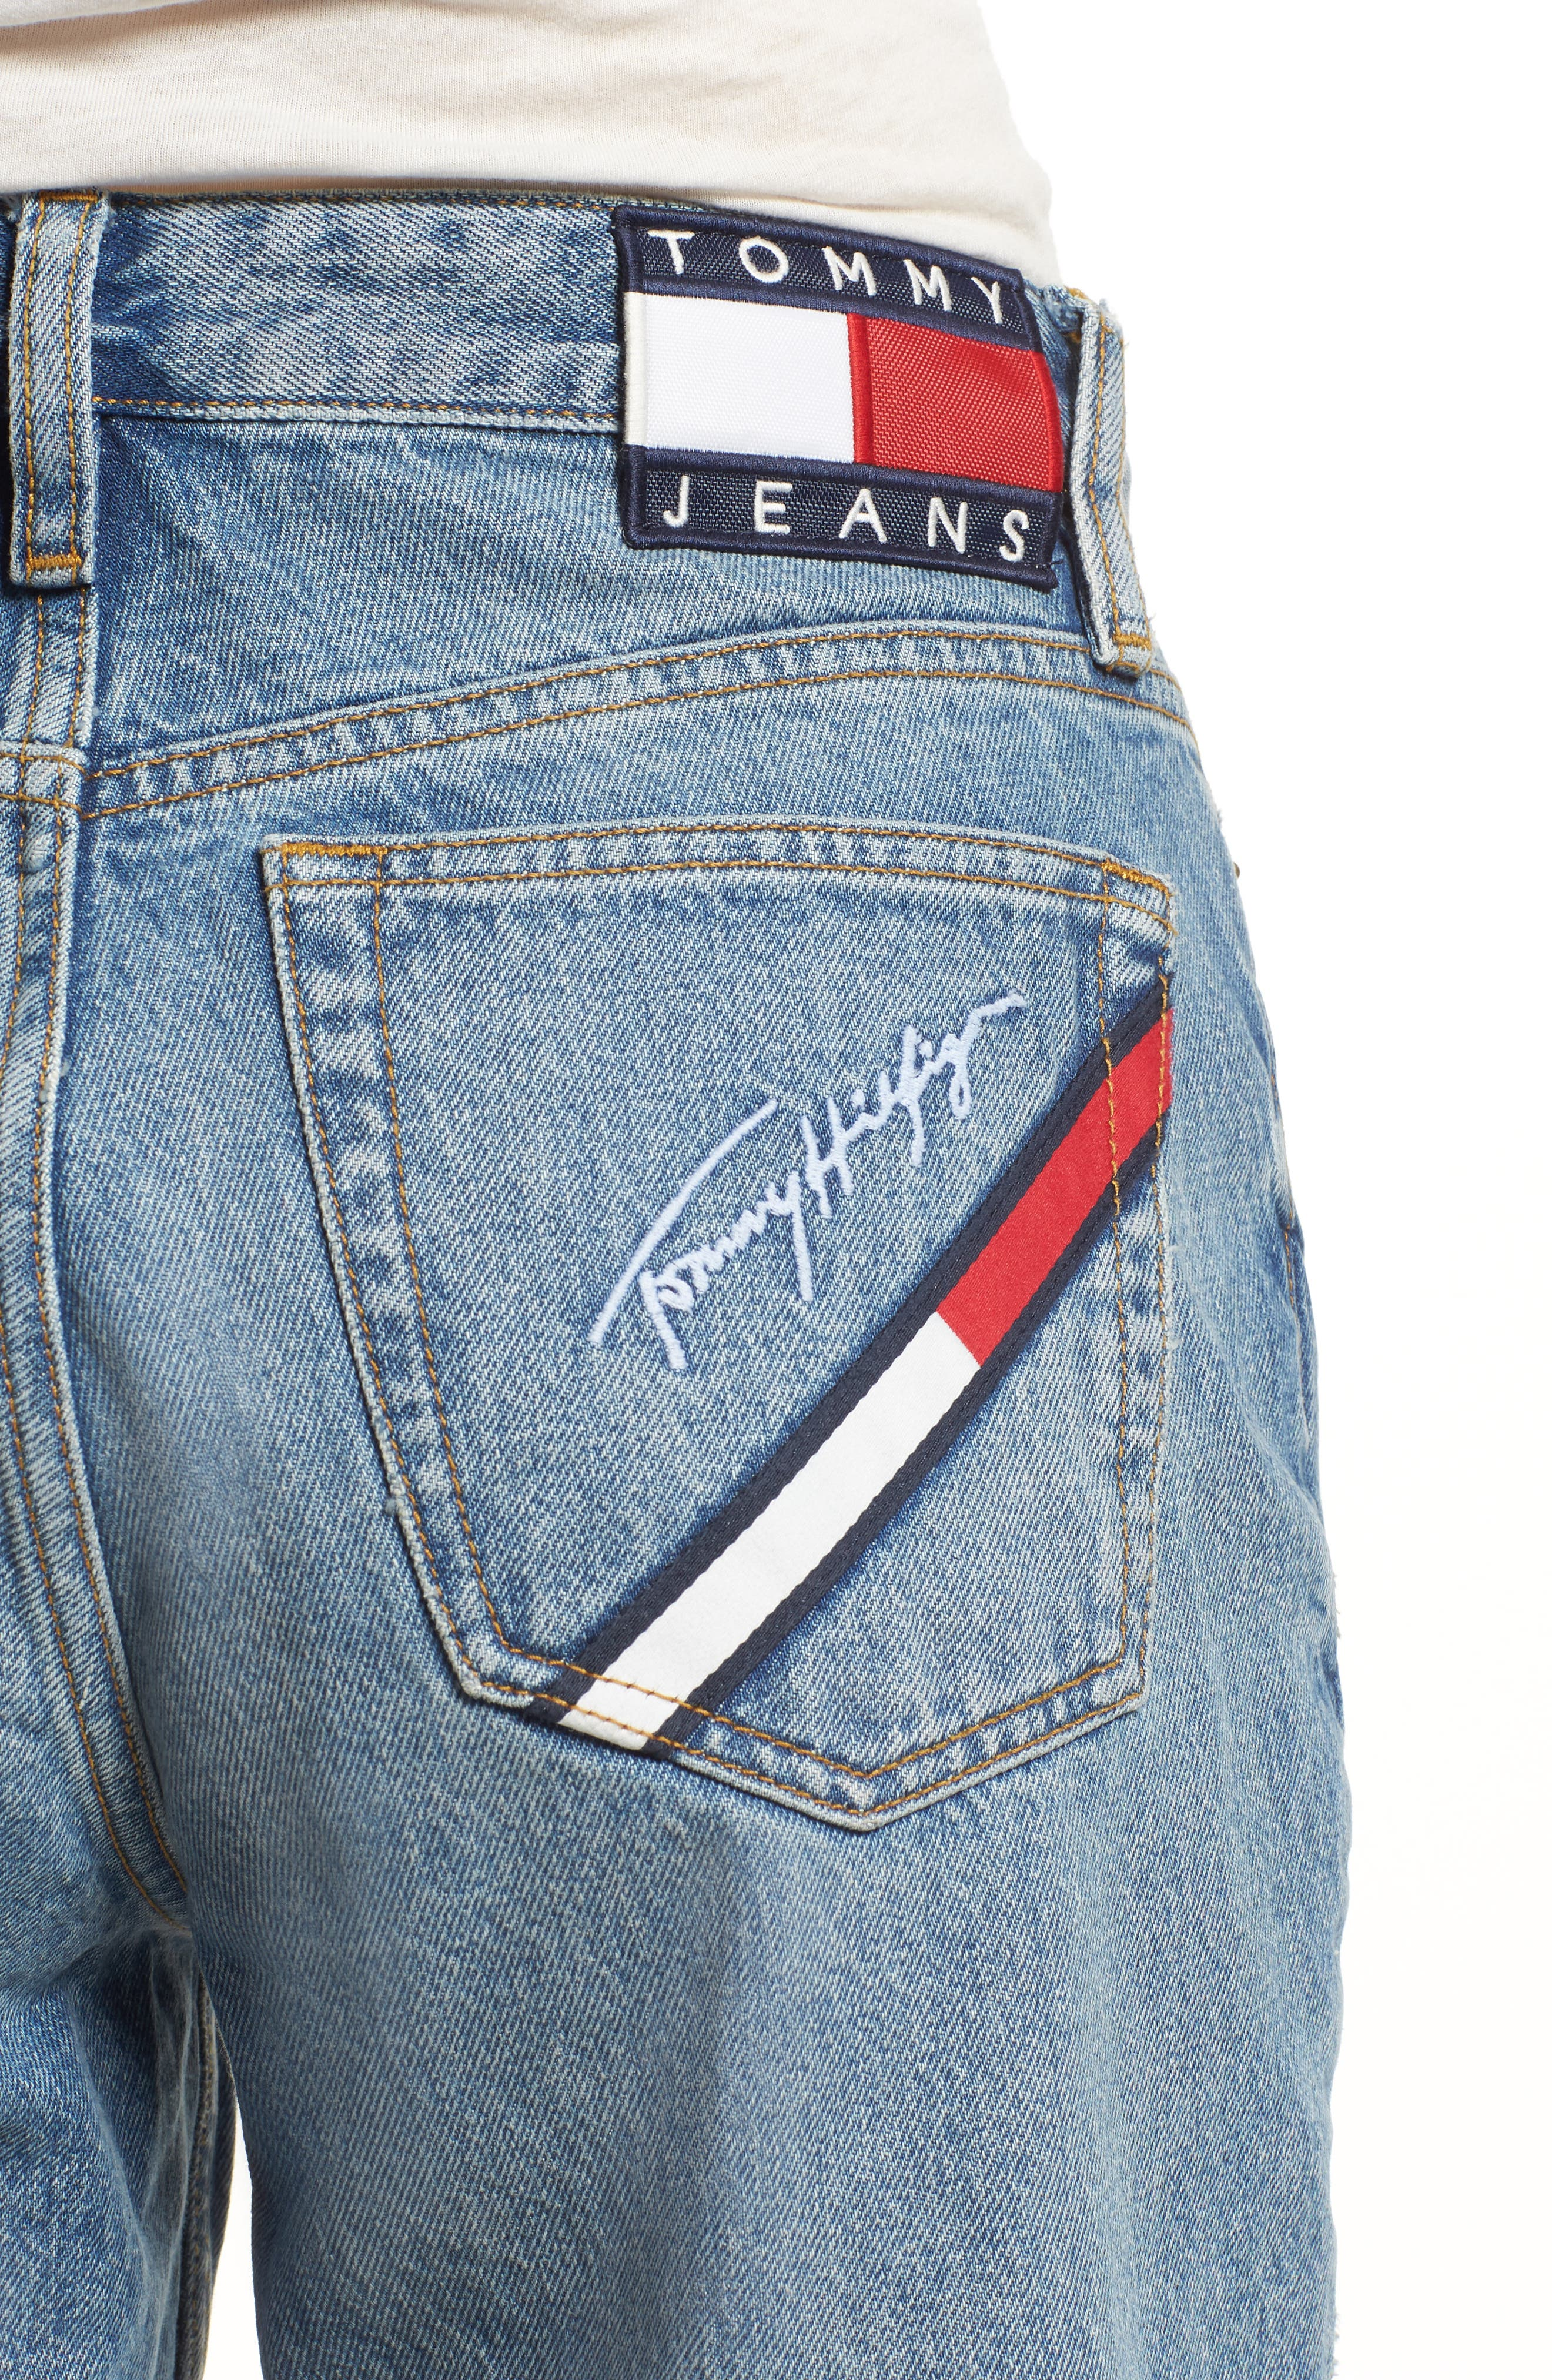 TOMMY JEANS,                             TJW 90s Mom Jeans,                             Alternate thumbnail 4, color,                             401